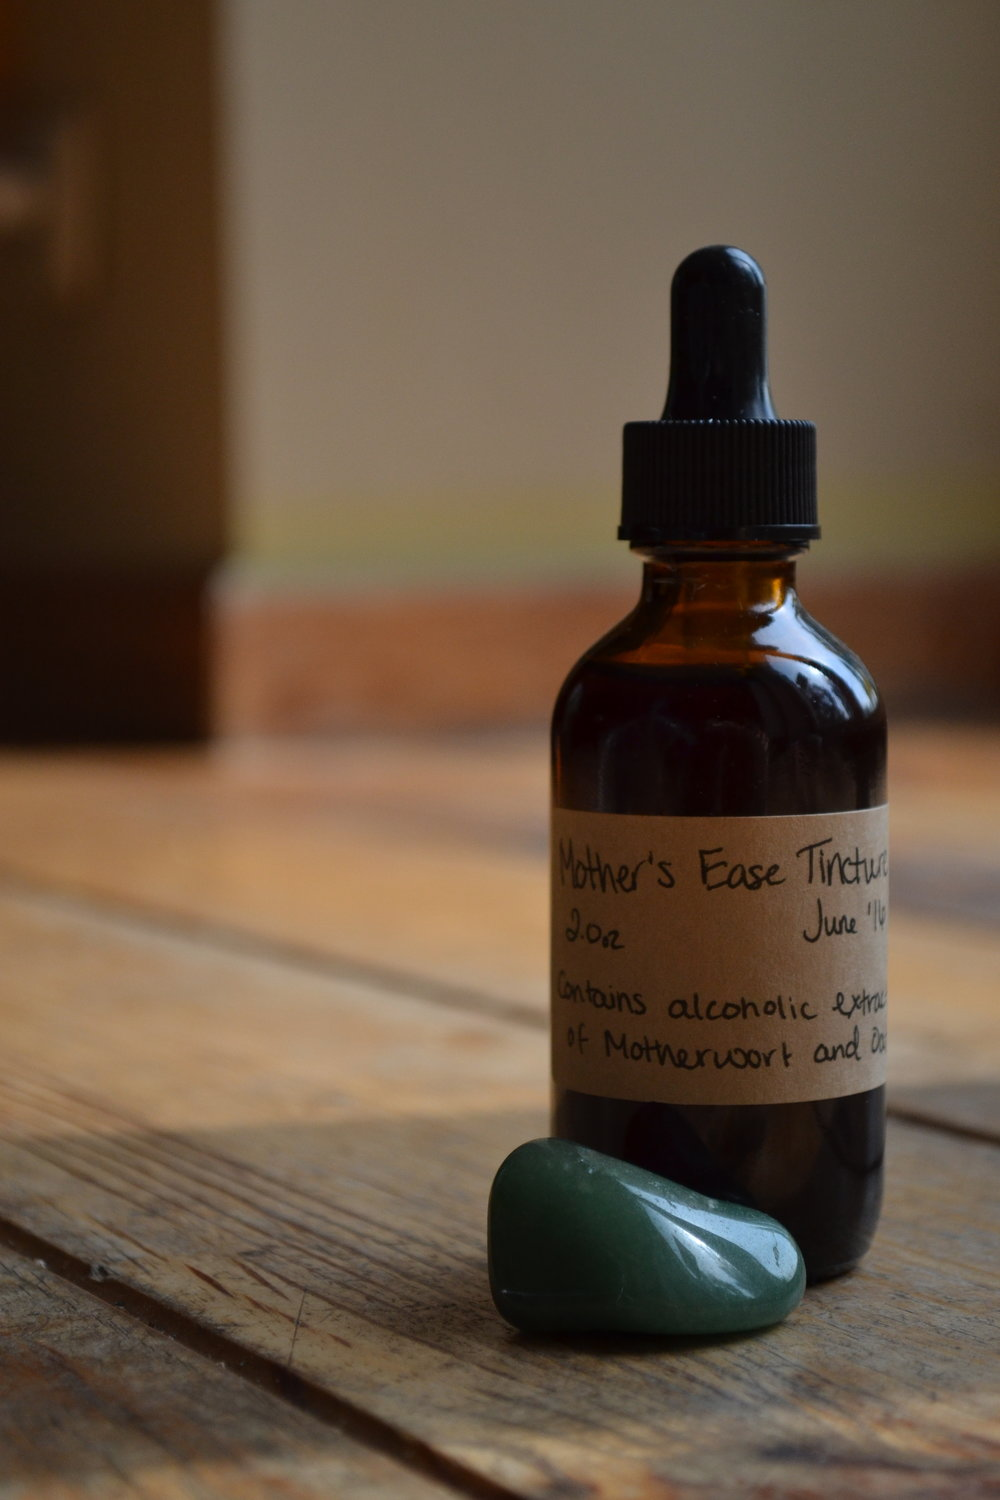 Mother-ease tincture for emotional support for moms.